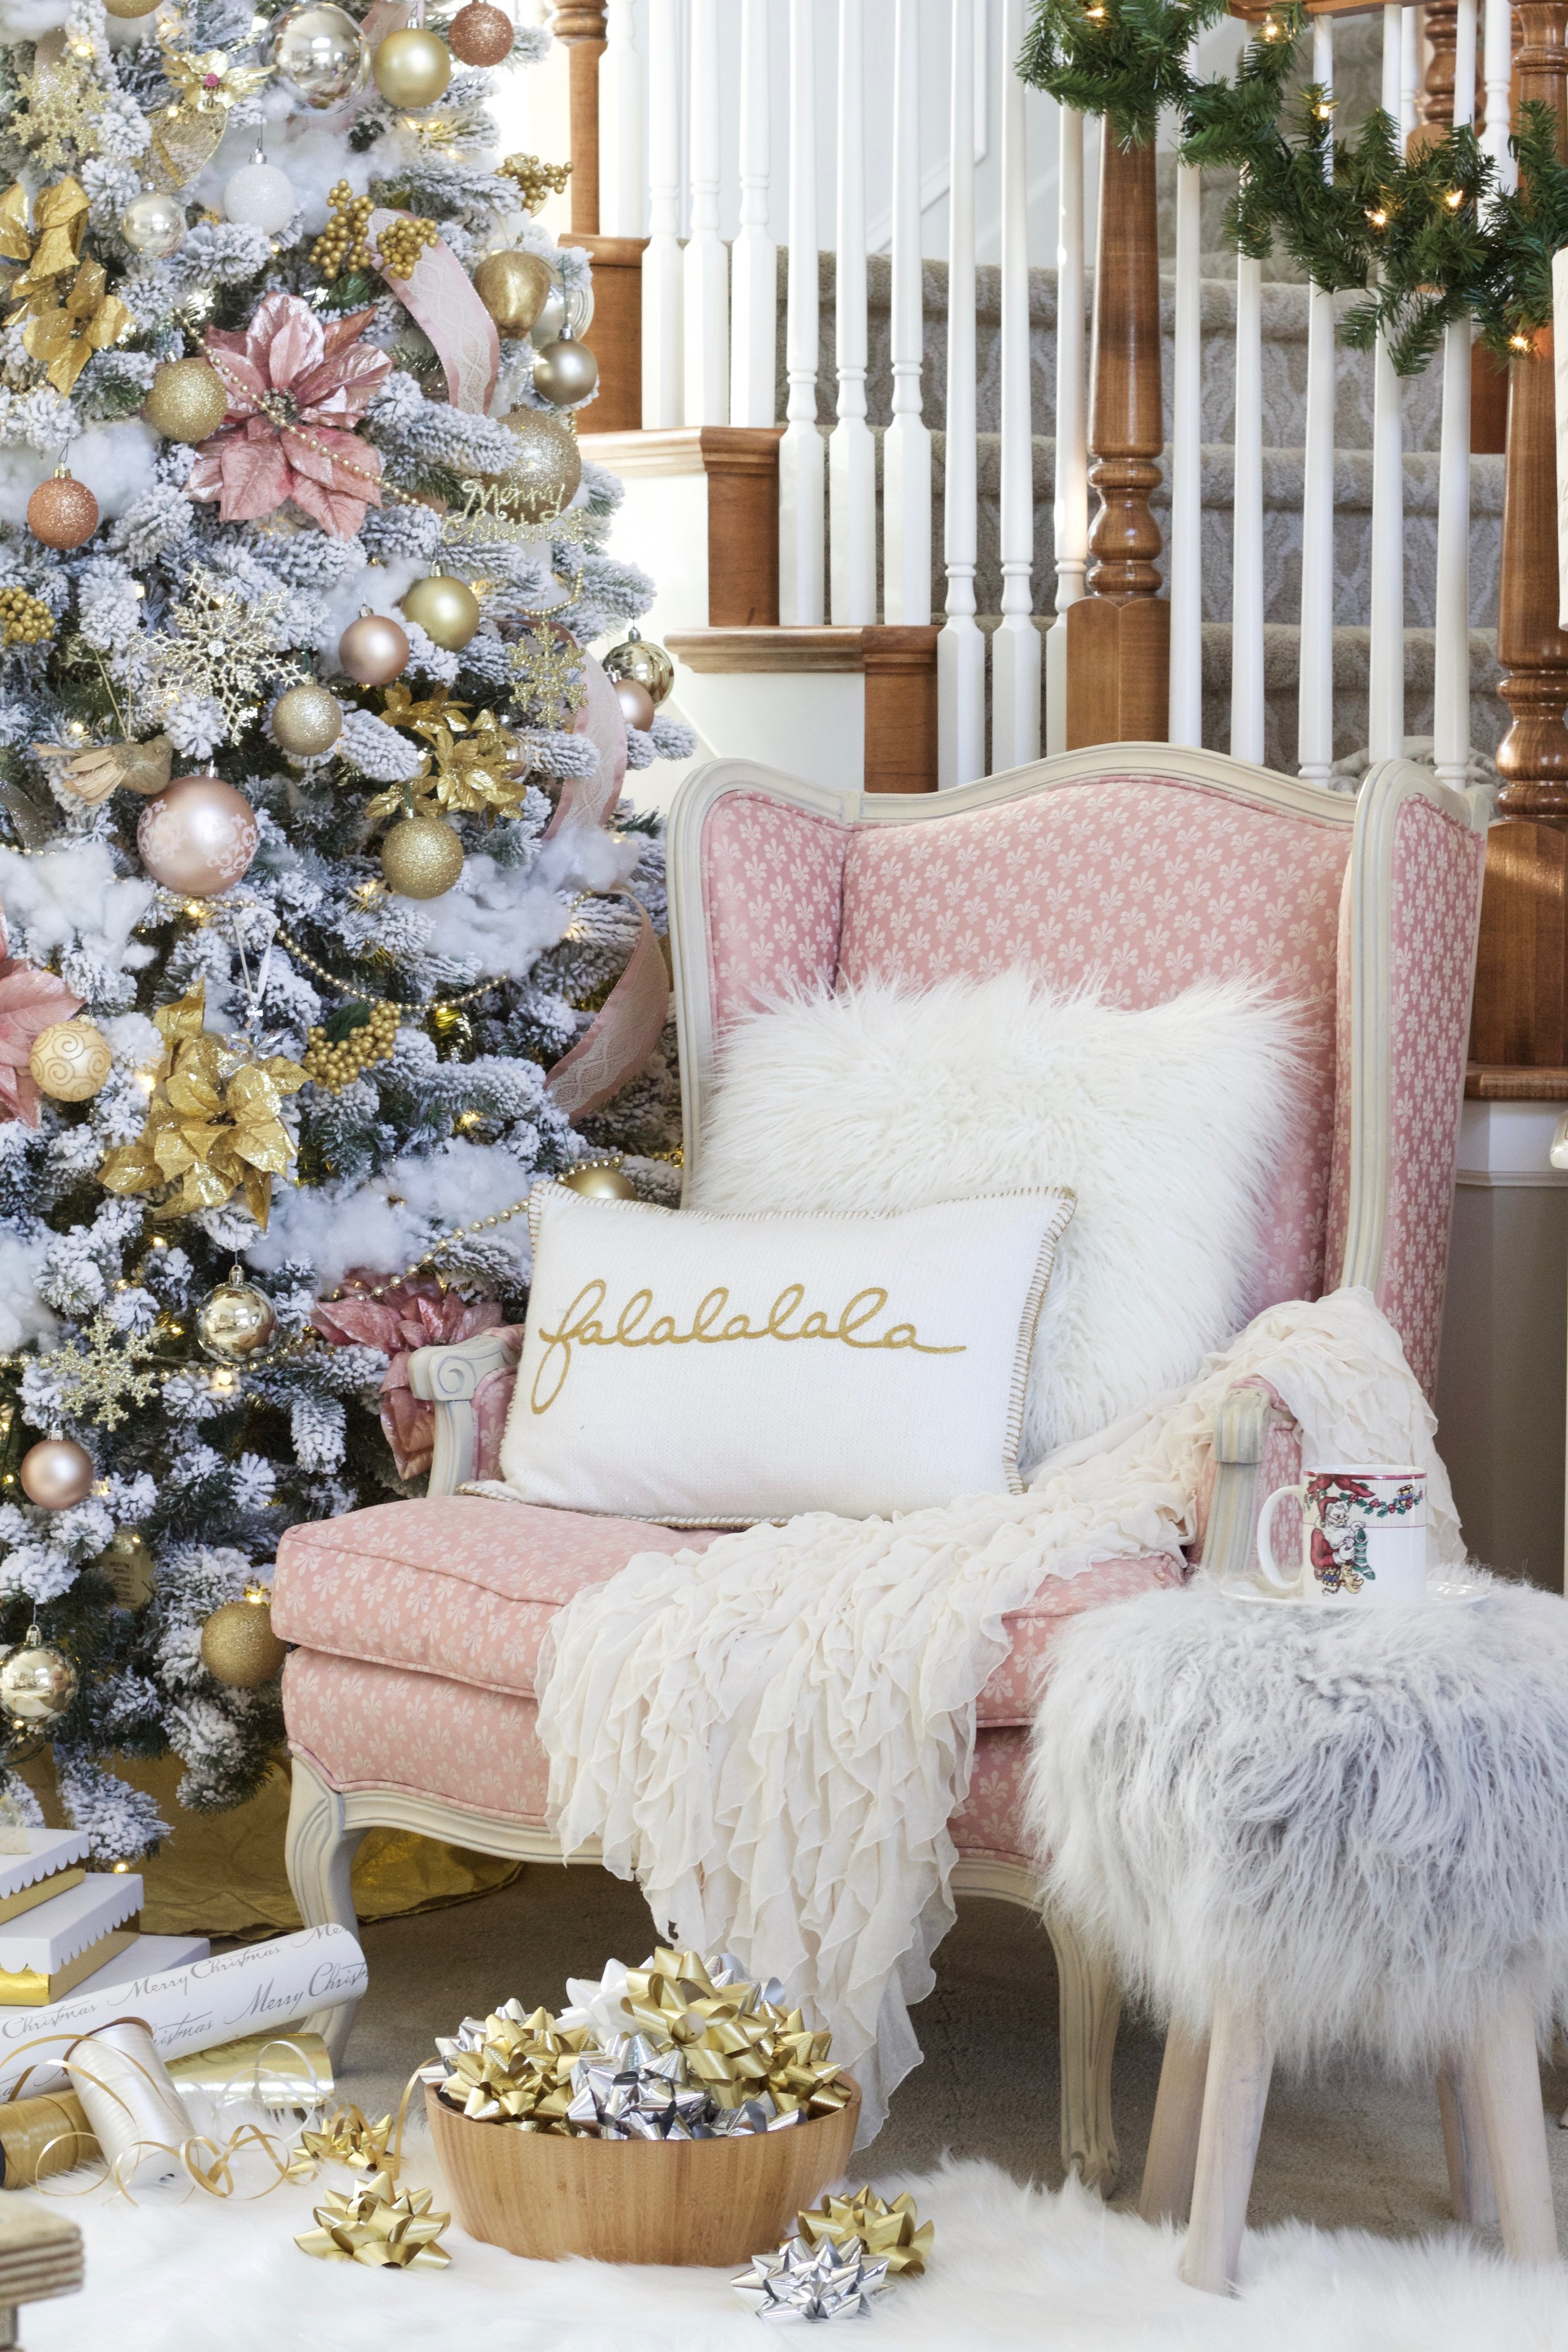 Christmas Home Tour 2017 Styled With Lace